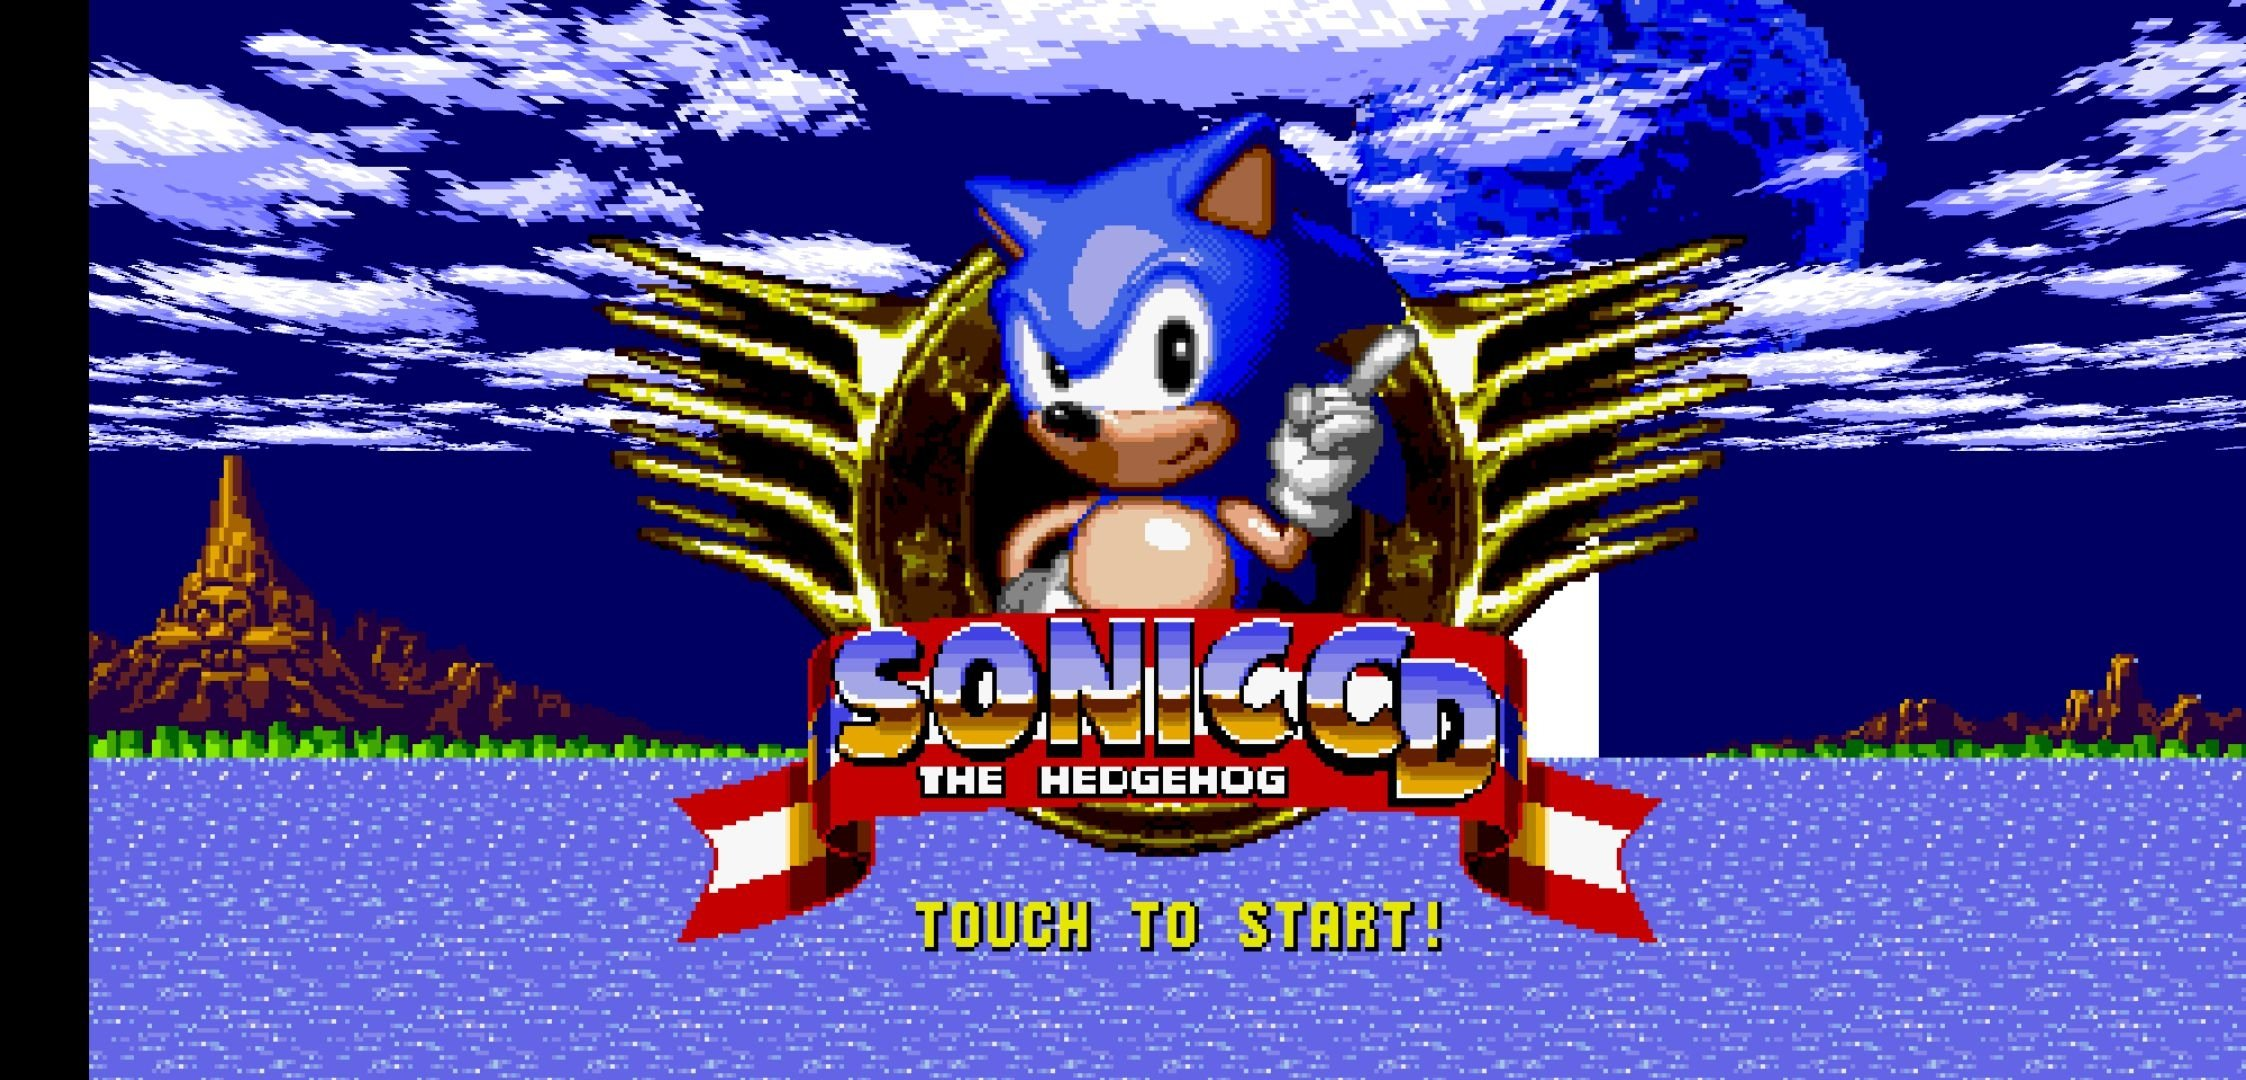 Sonic Cd Classic 1 0 5 Download For Android Apk Free